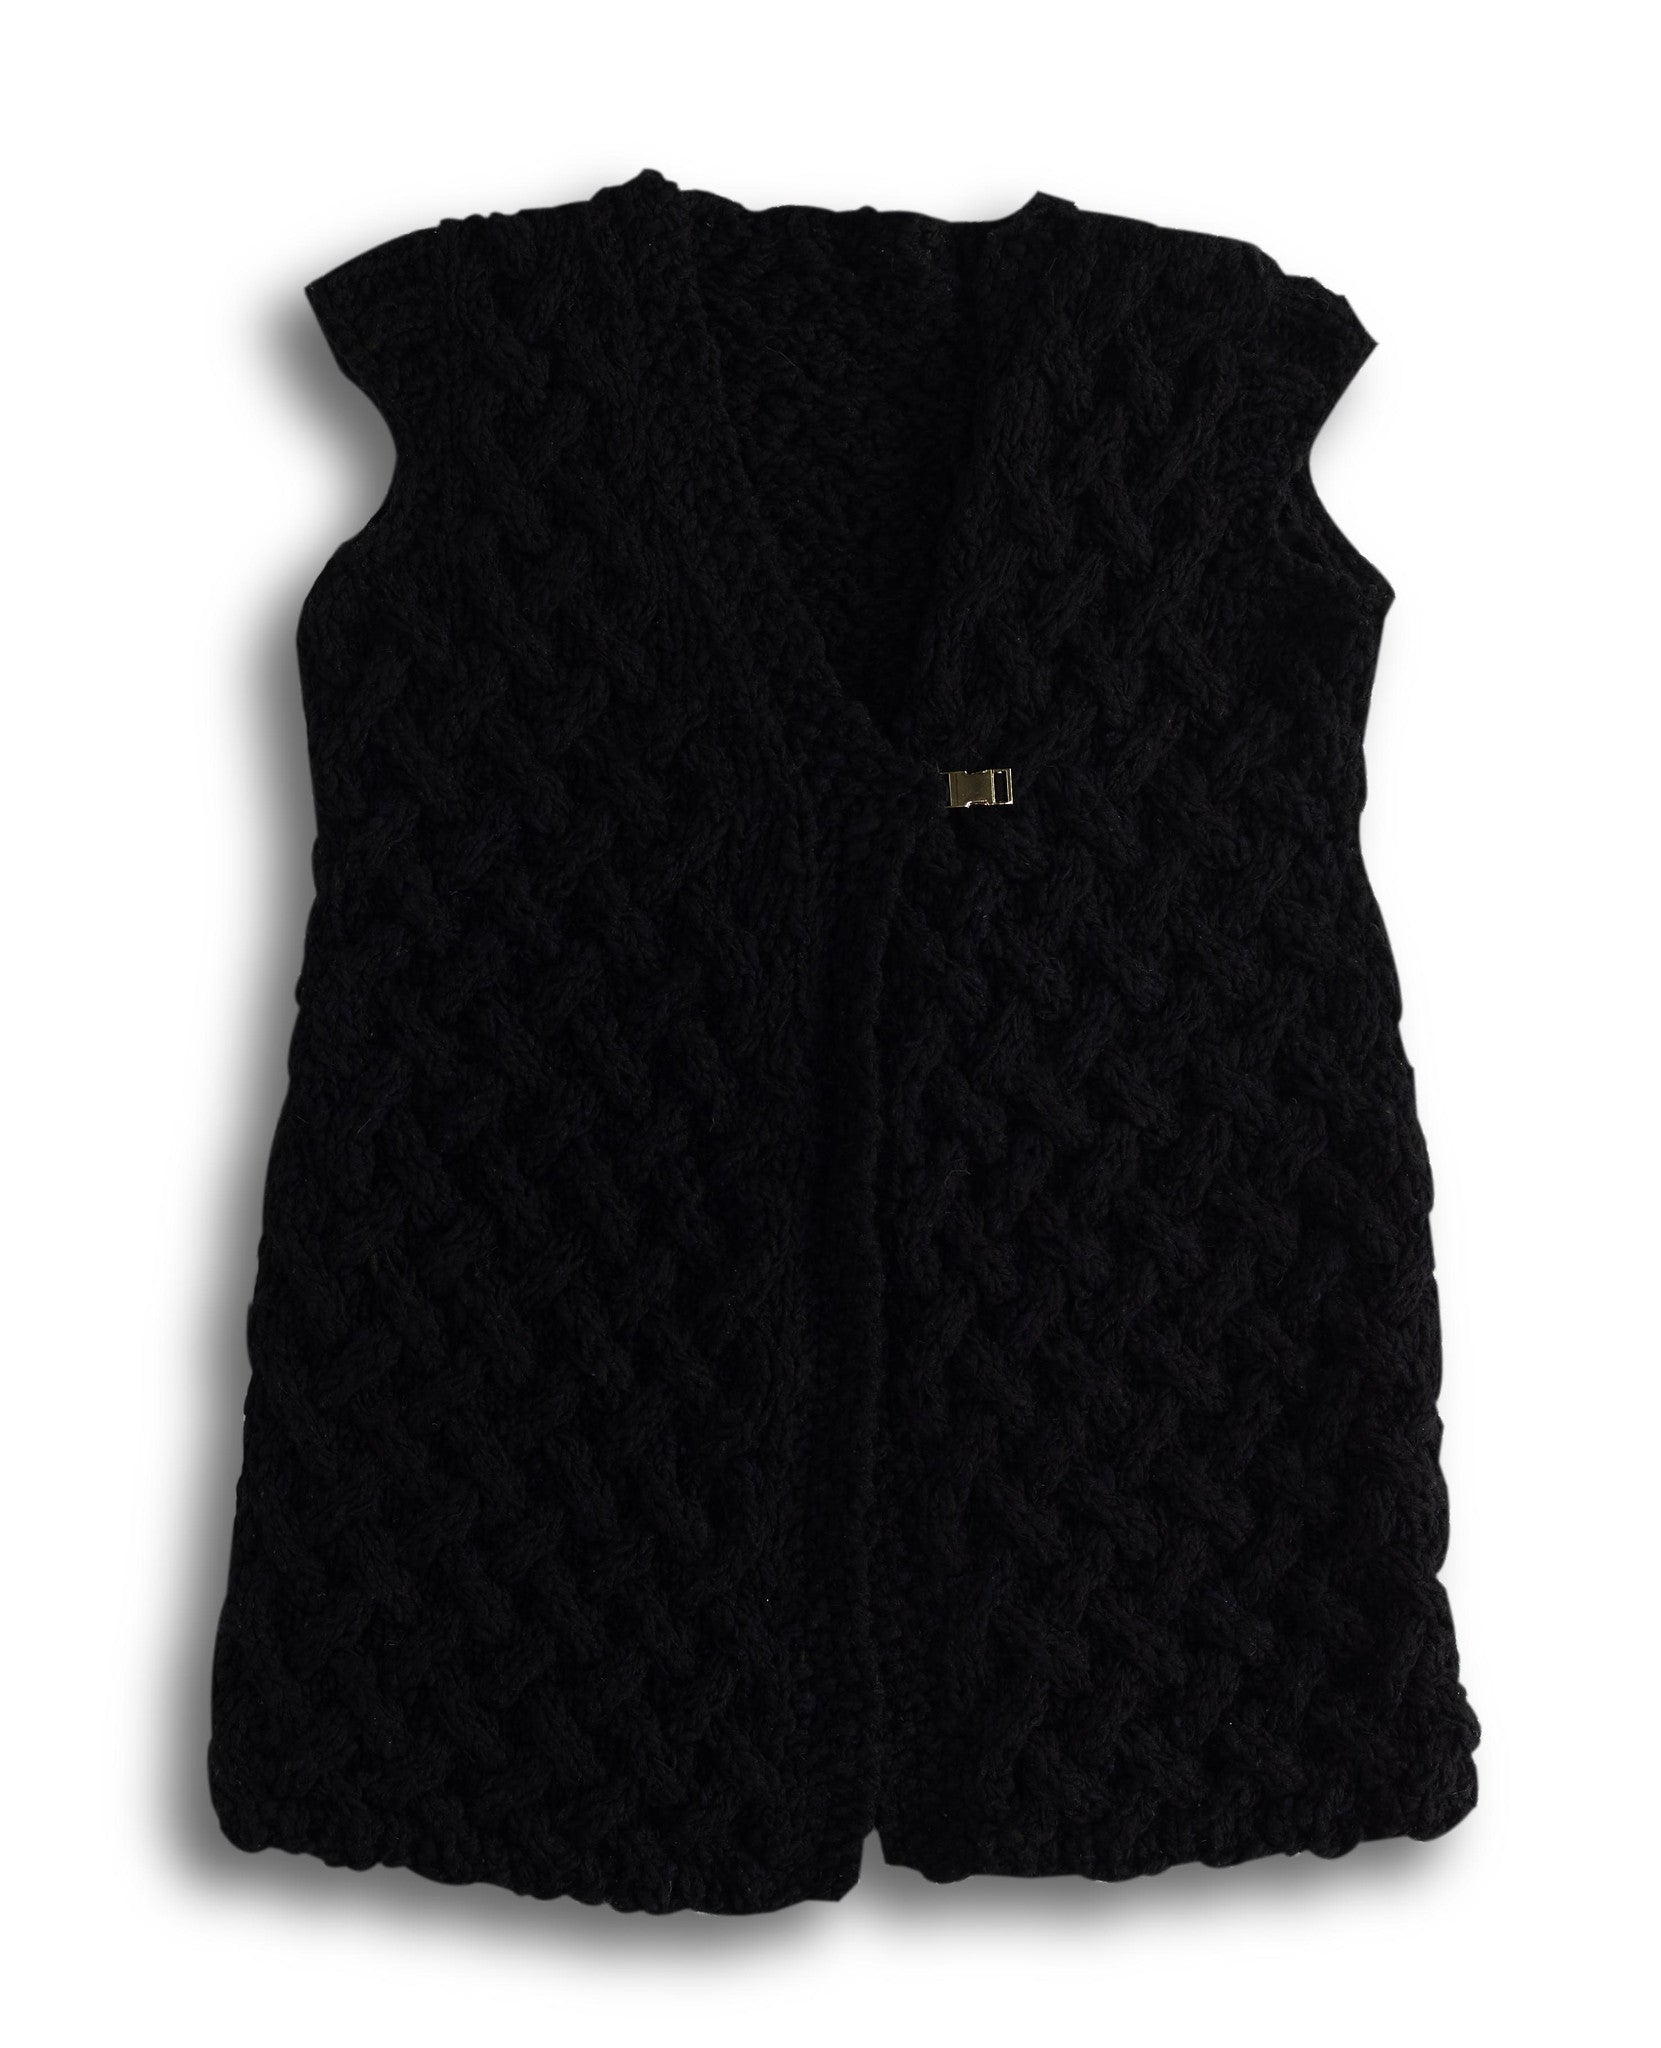 02 Sustainable Fashion Artisan Made Wool Vest